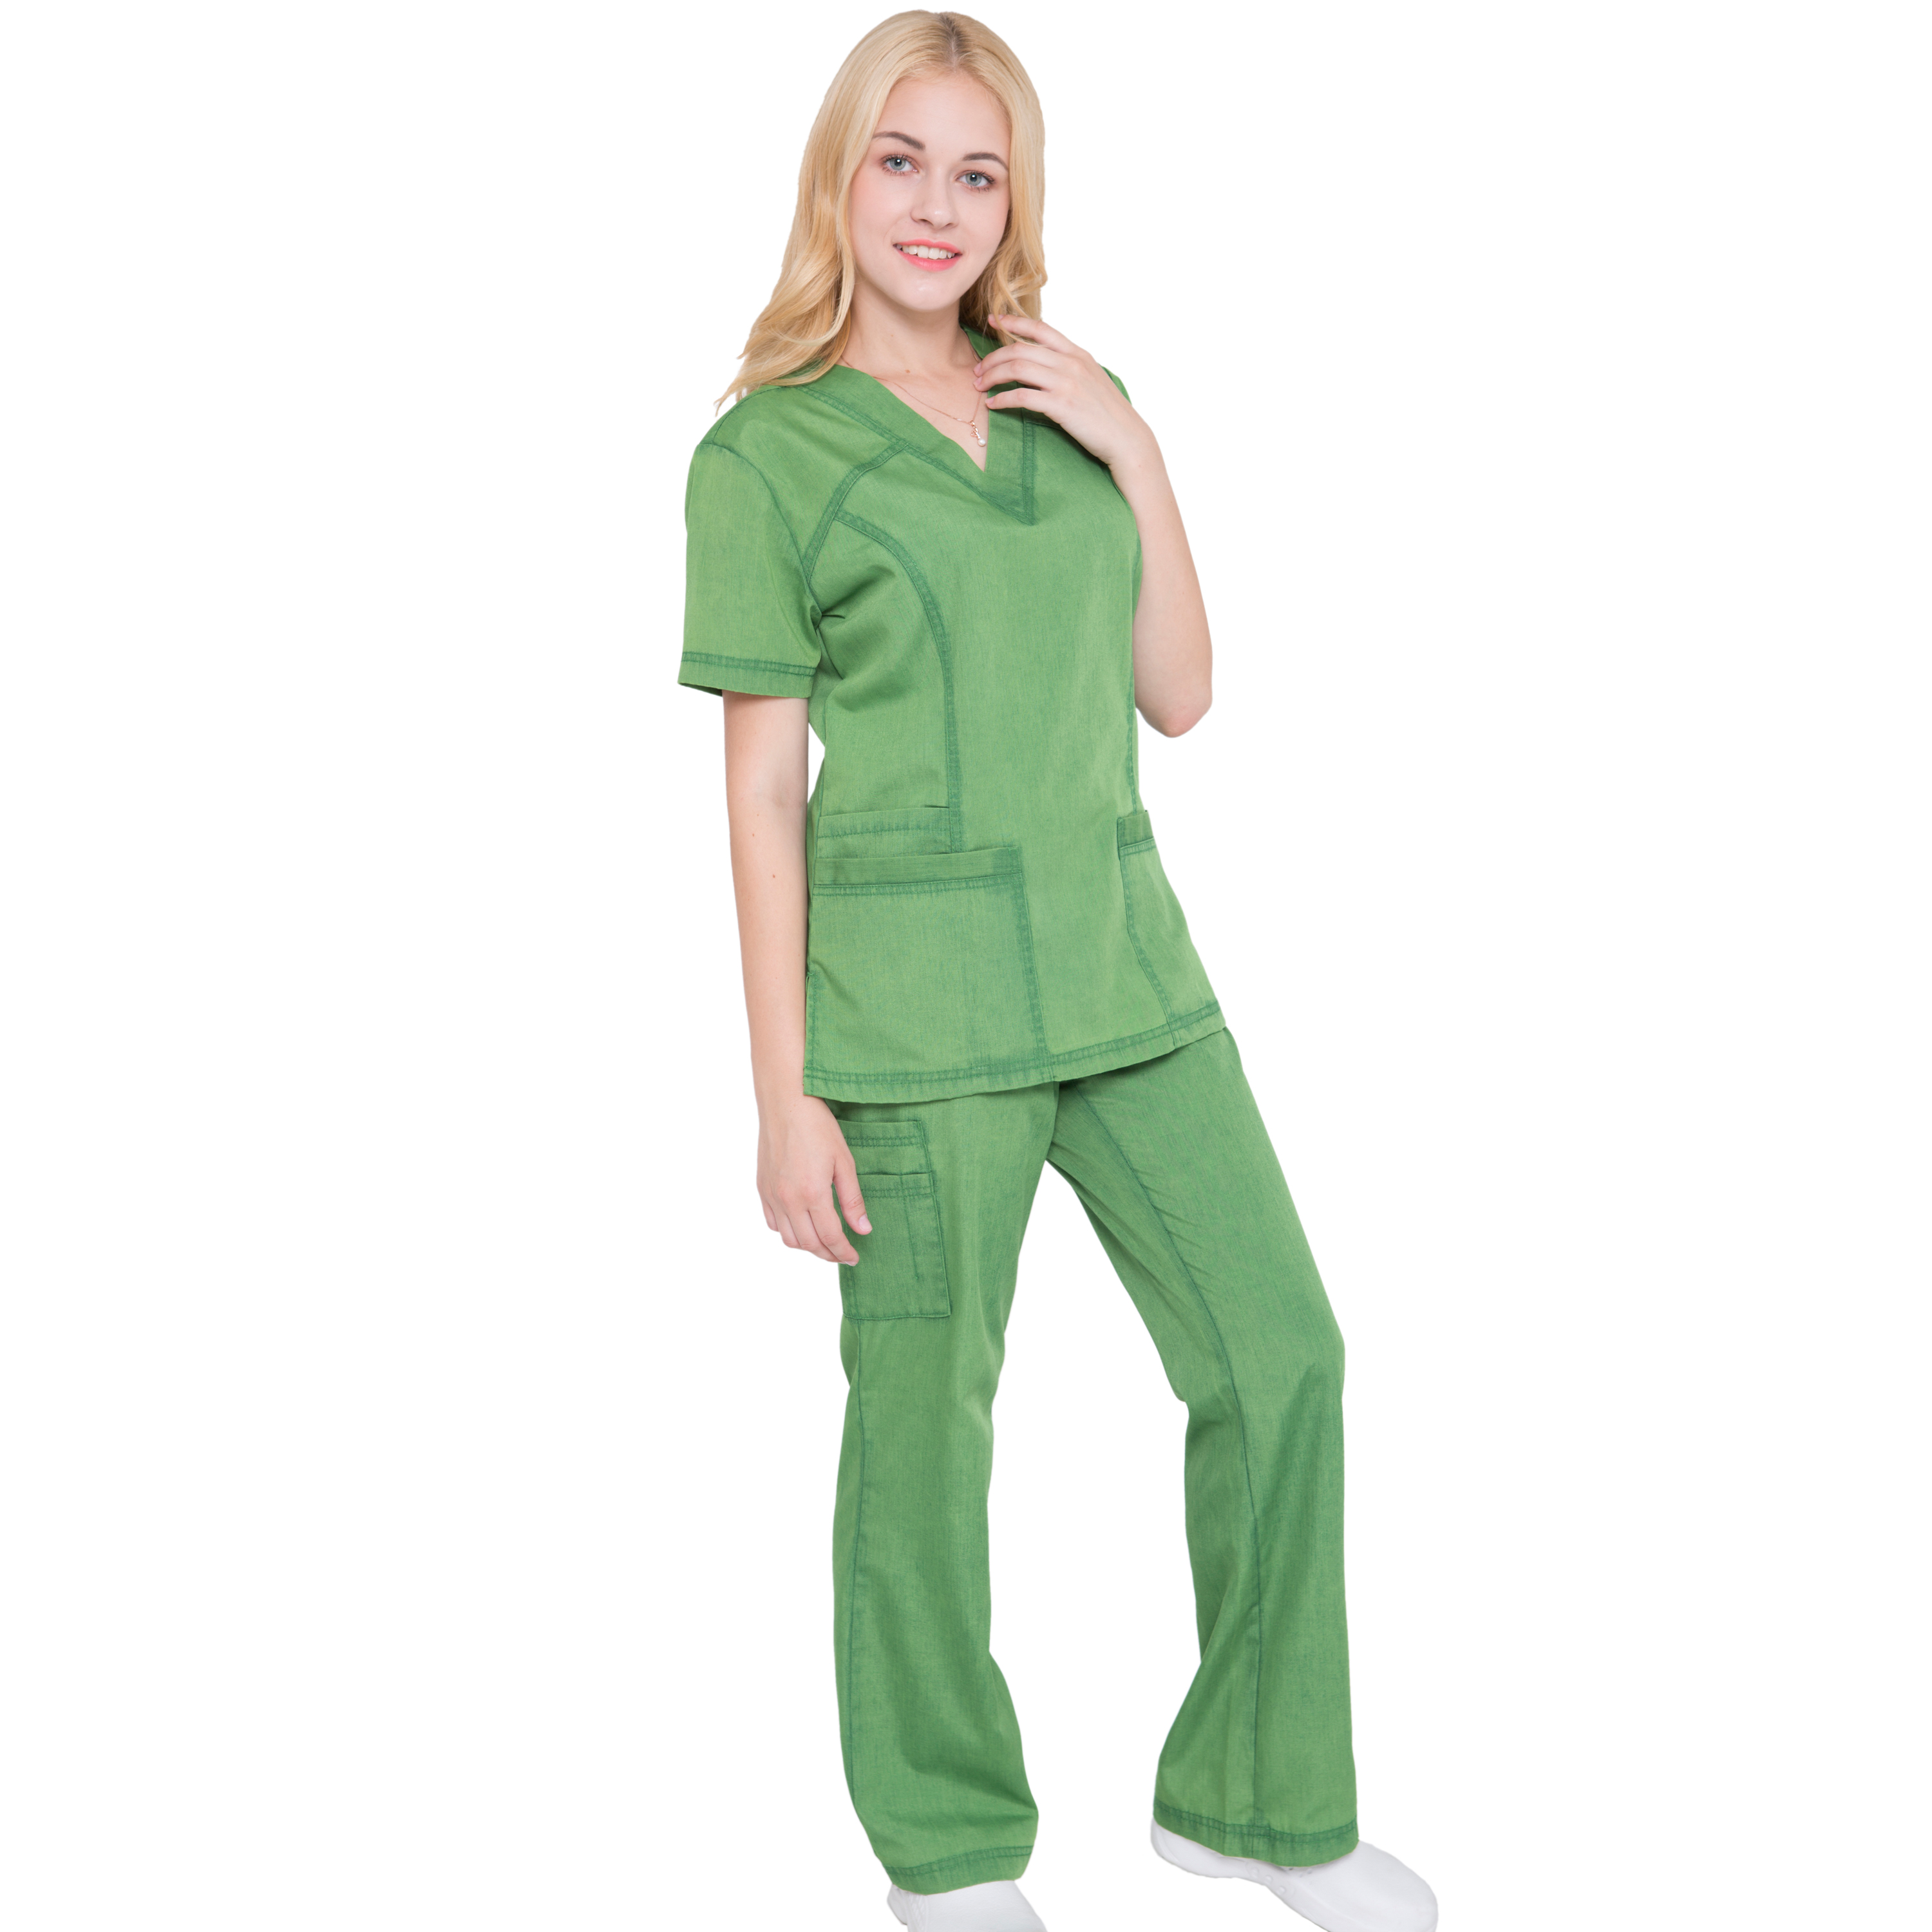 Women Scrub Set Medical Uniforms Top and Pants Jeanish Washed Superior Softness JS1605